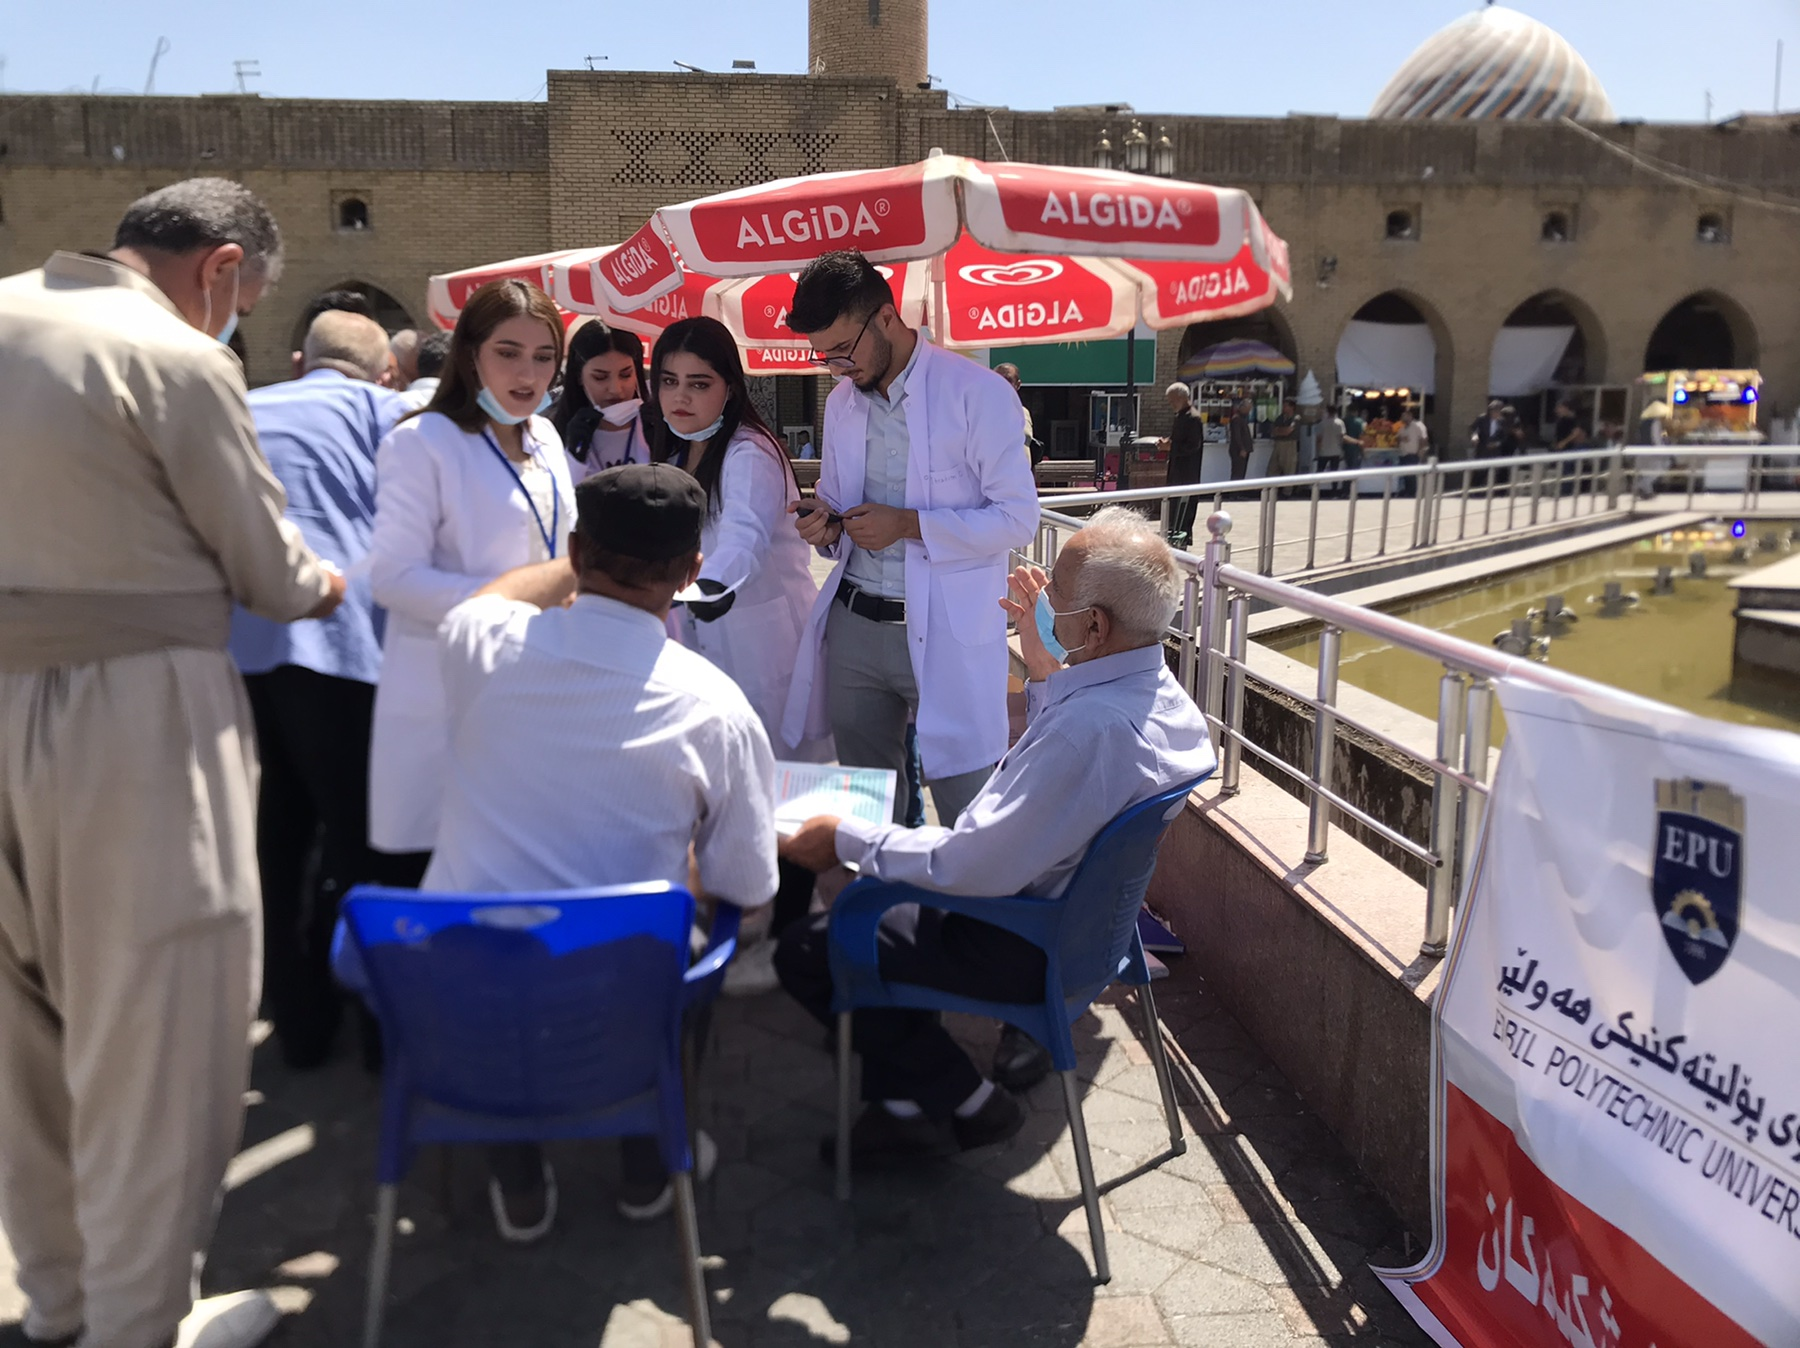 The Medical Departments of the Erbil Polytechnic University Do Blood Tests For the People in the Erbil City Center